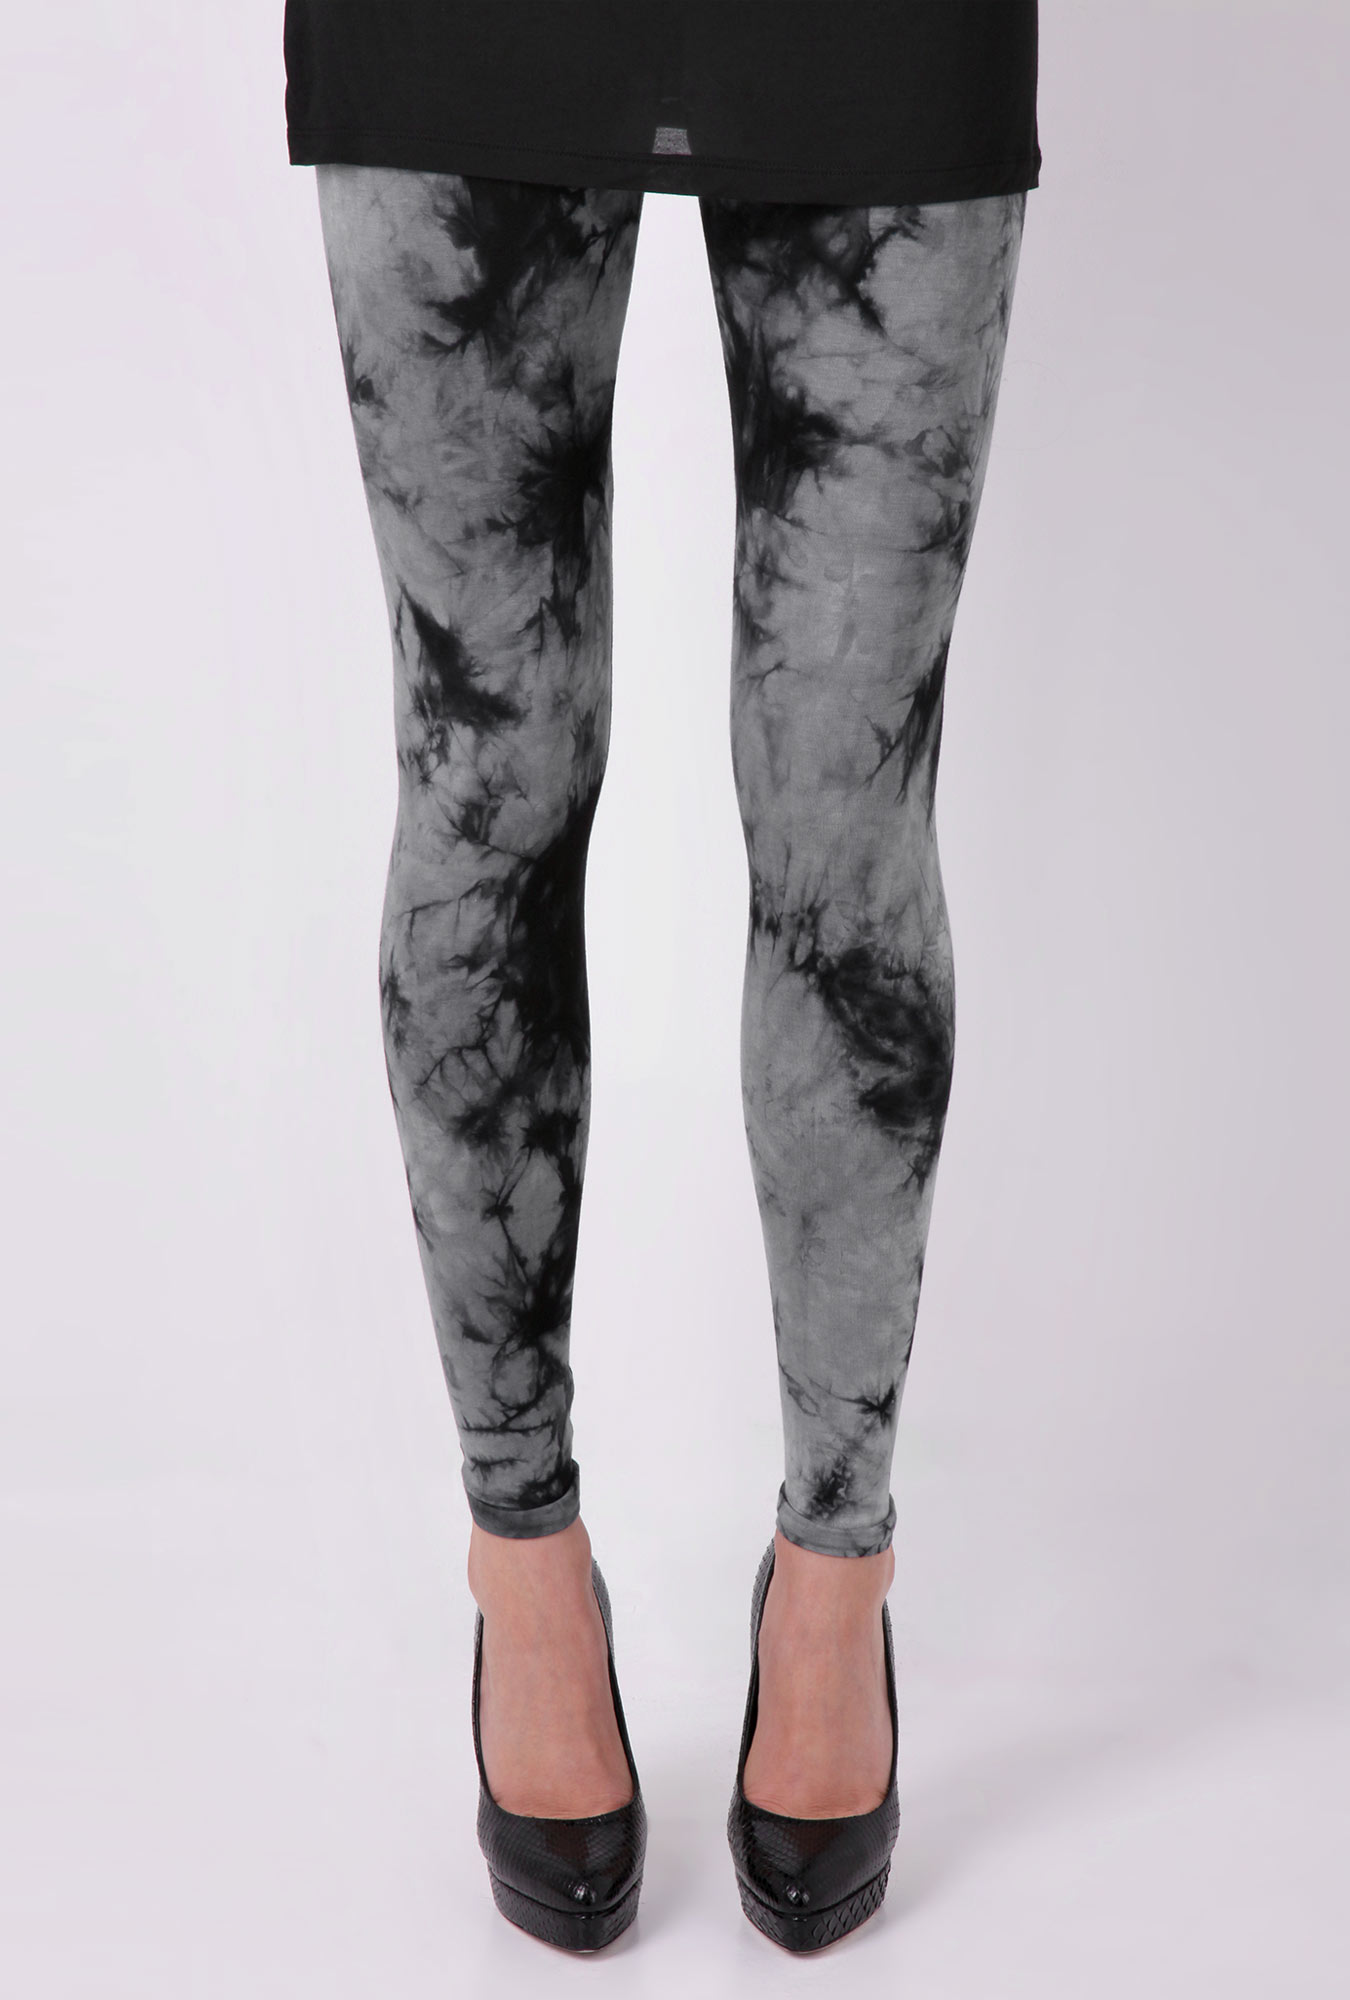 Tie Dye Leggings by Daddy Long Legs - Black - Buy Leggings Online at my-wardrobe.com